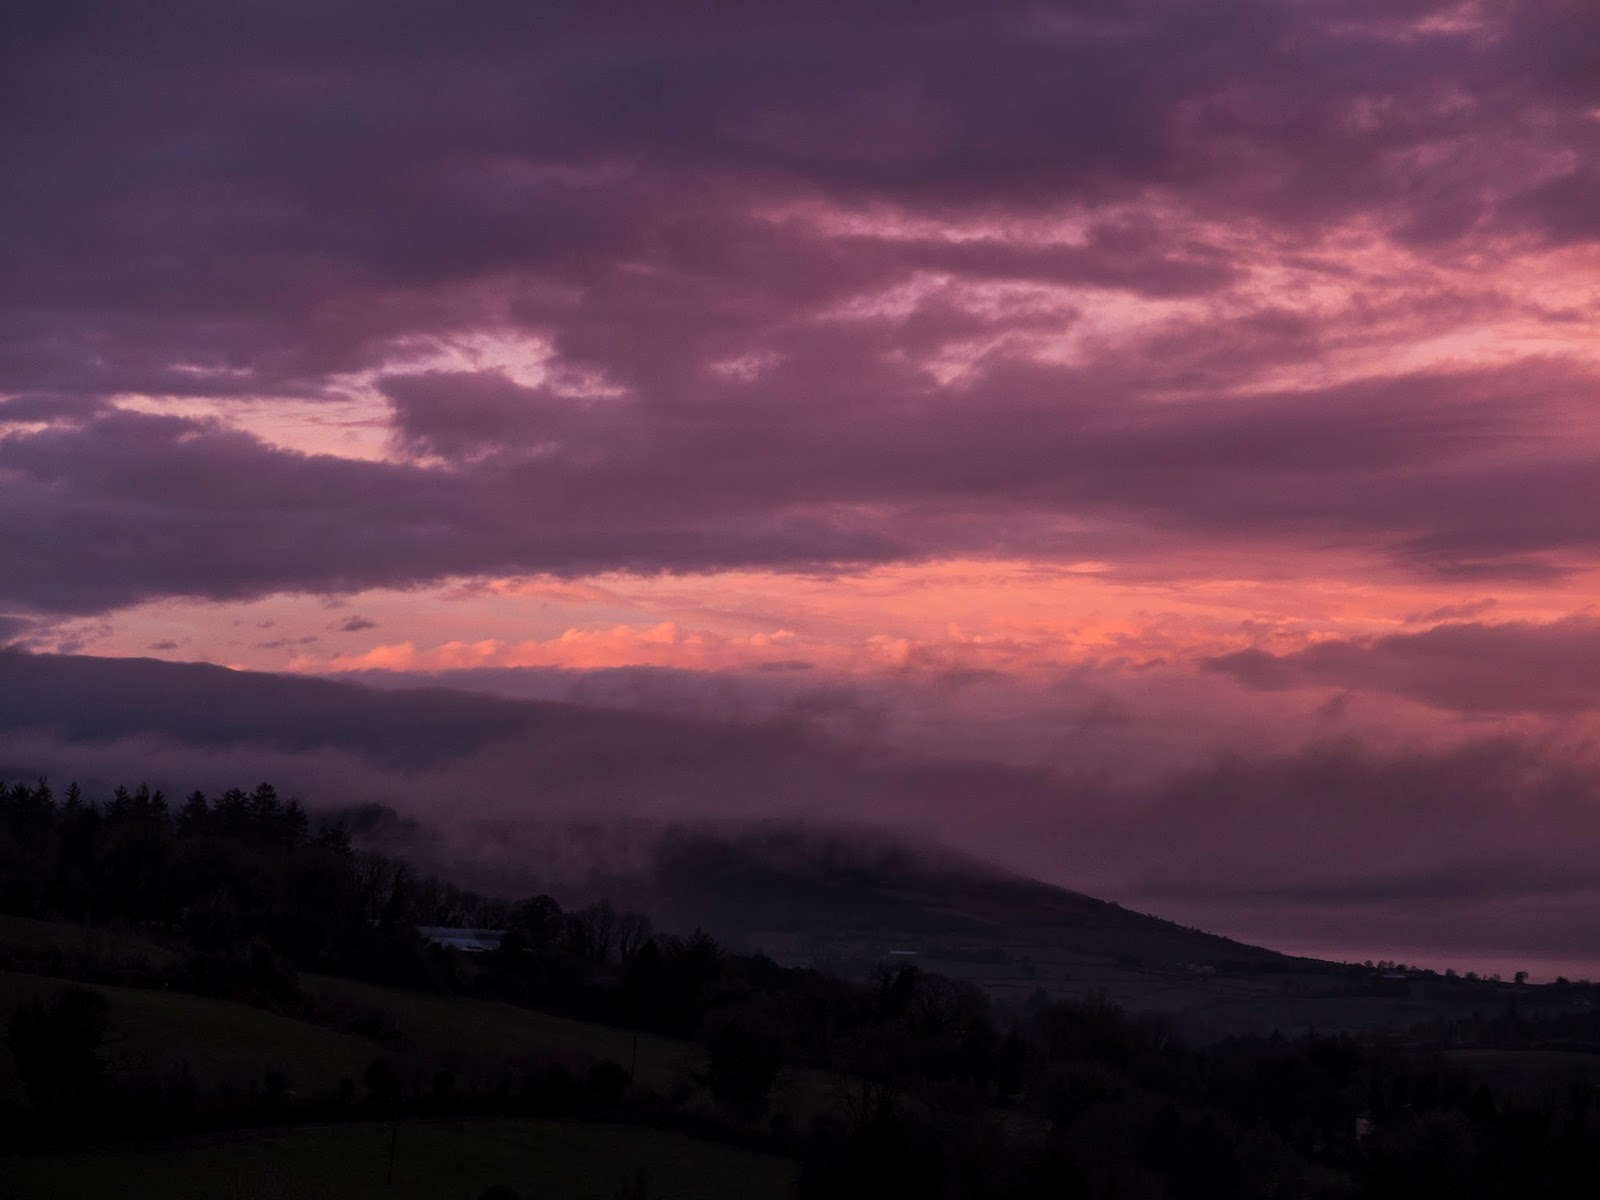 Purple and pink sunset clouds over Hilary Mountain in North Cork, Ireland.